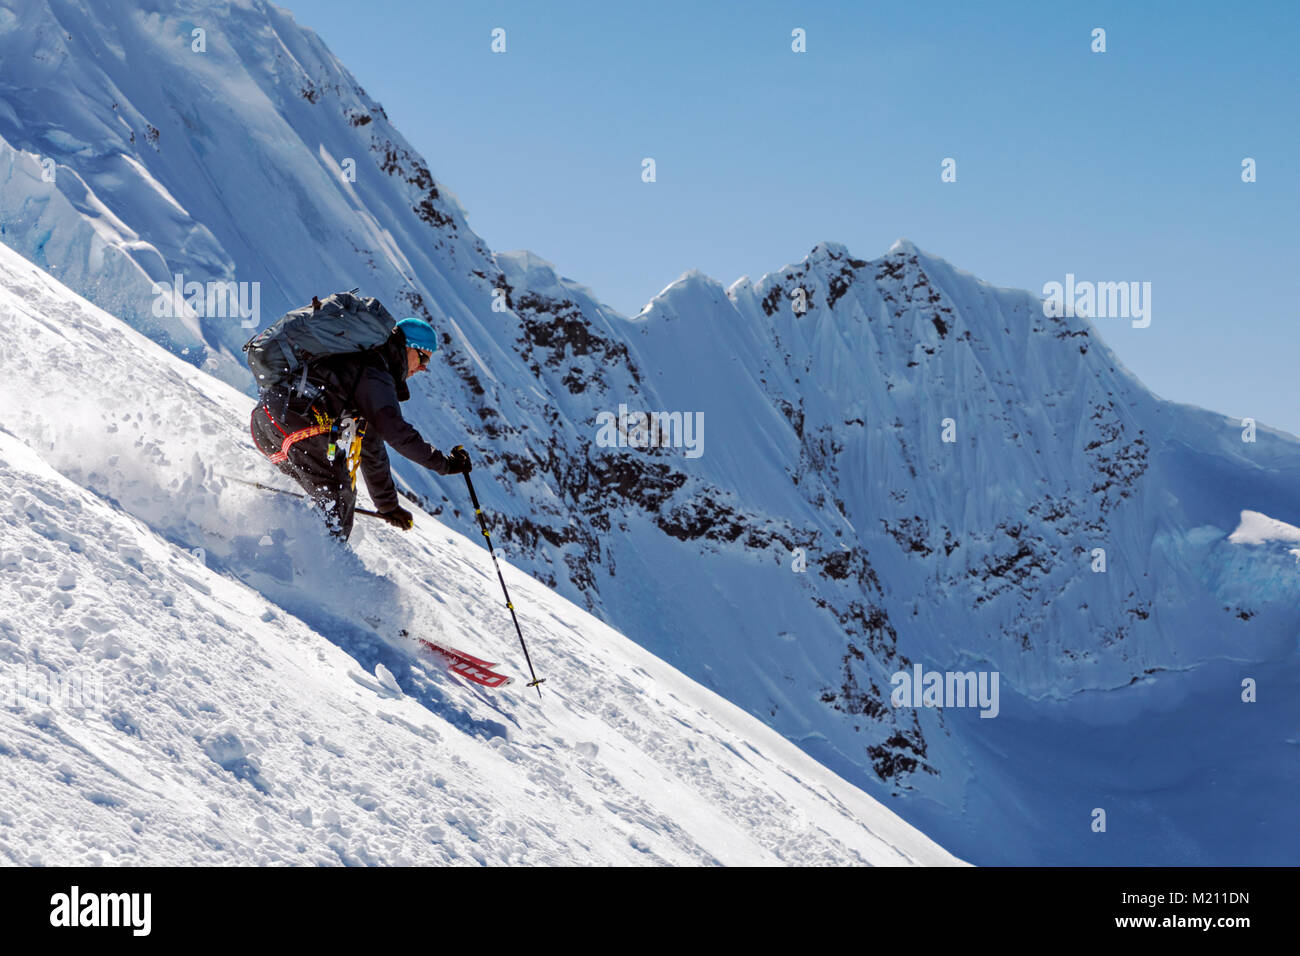 Alpine ski mountaineer skiing downhill in Antarctica; Nansen Island Stock Photo